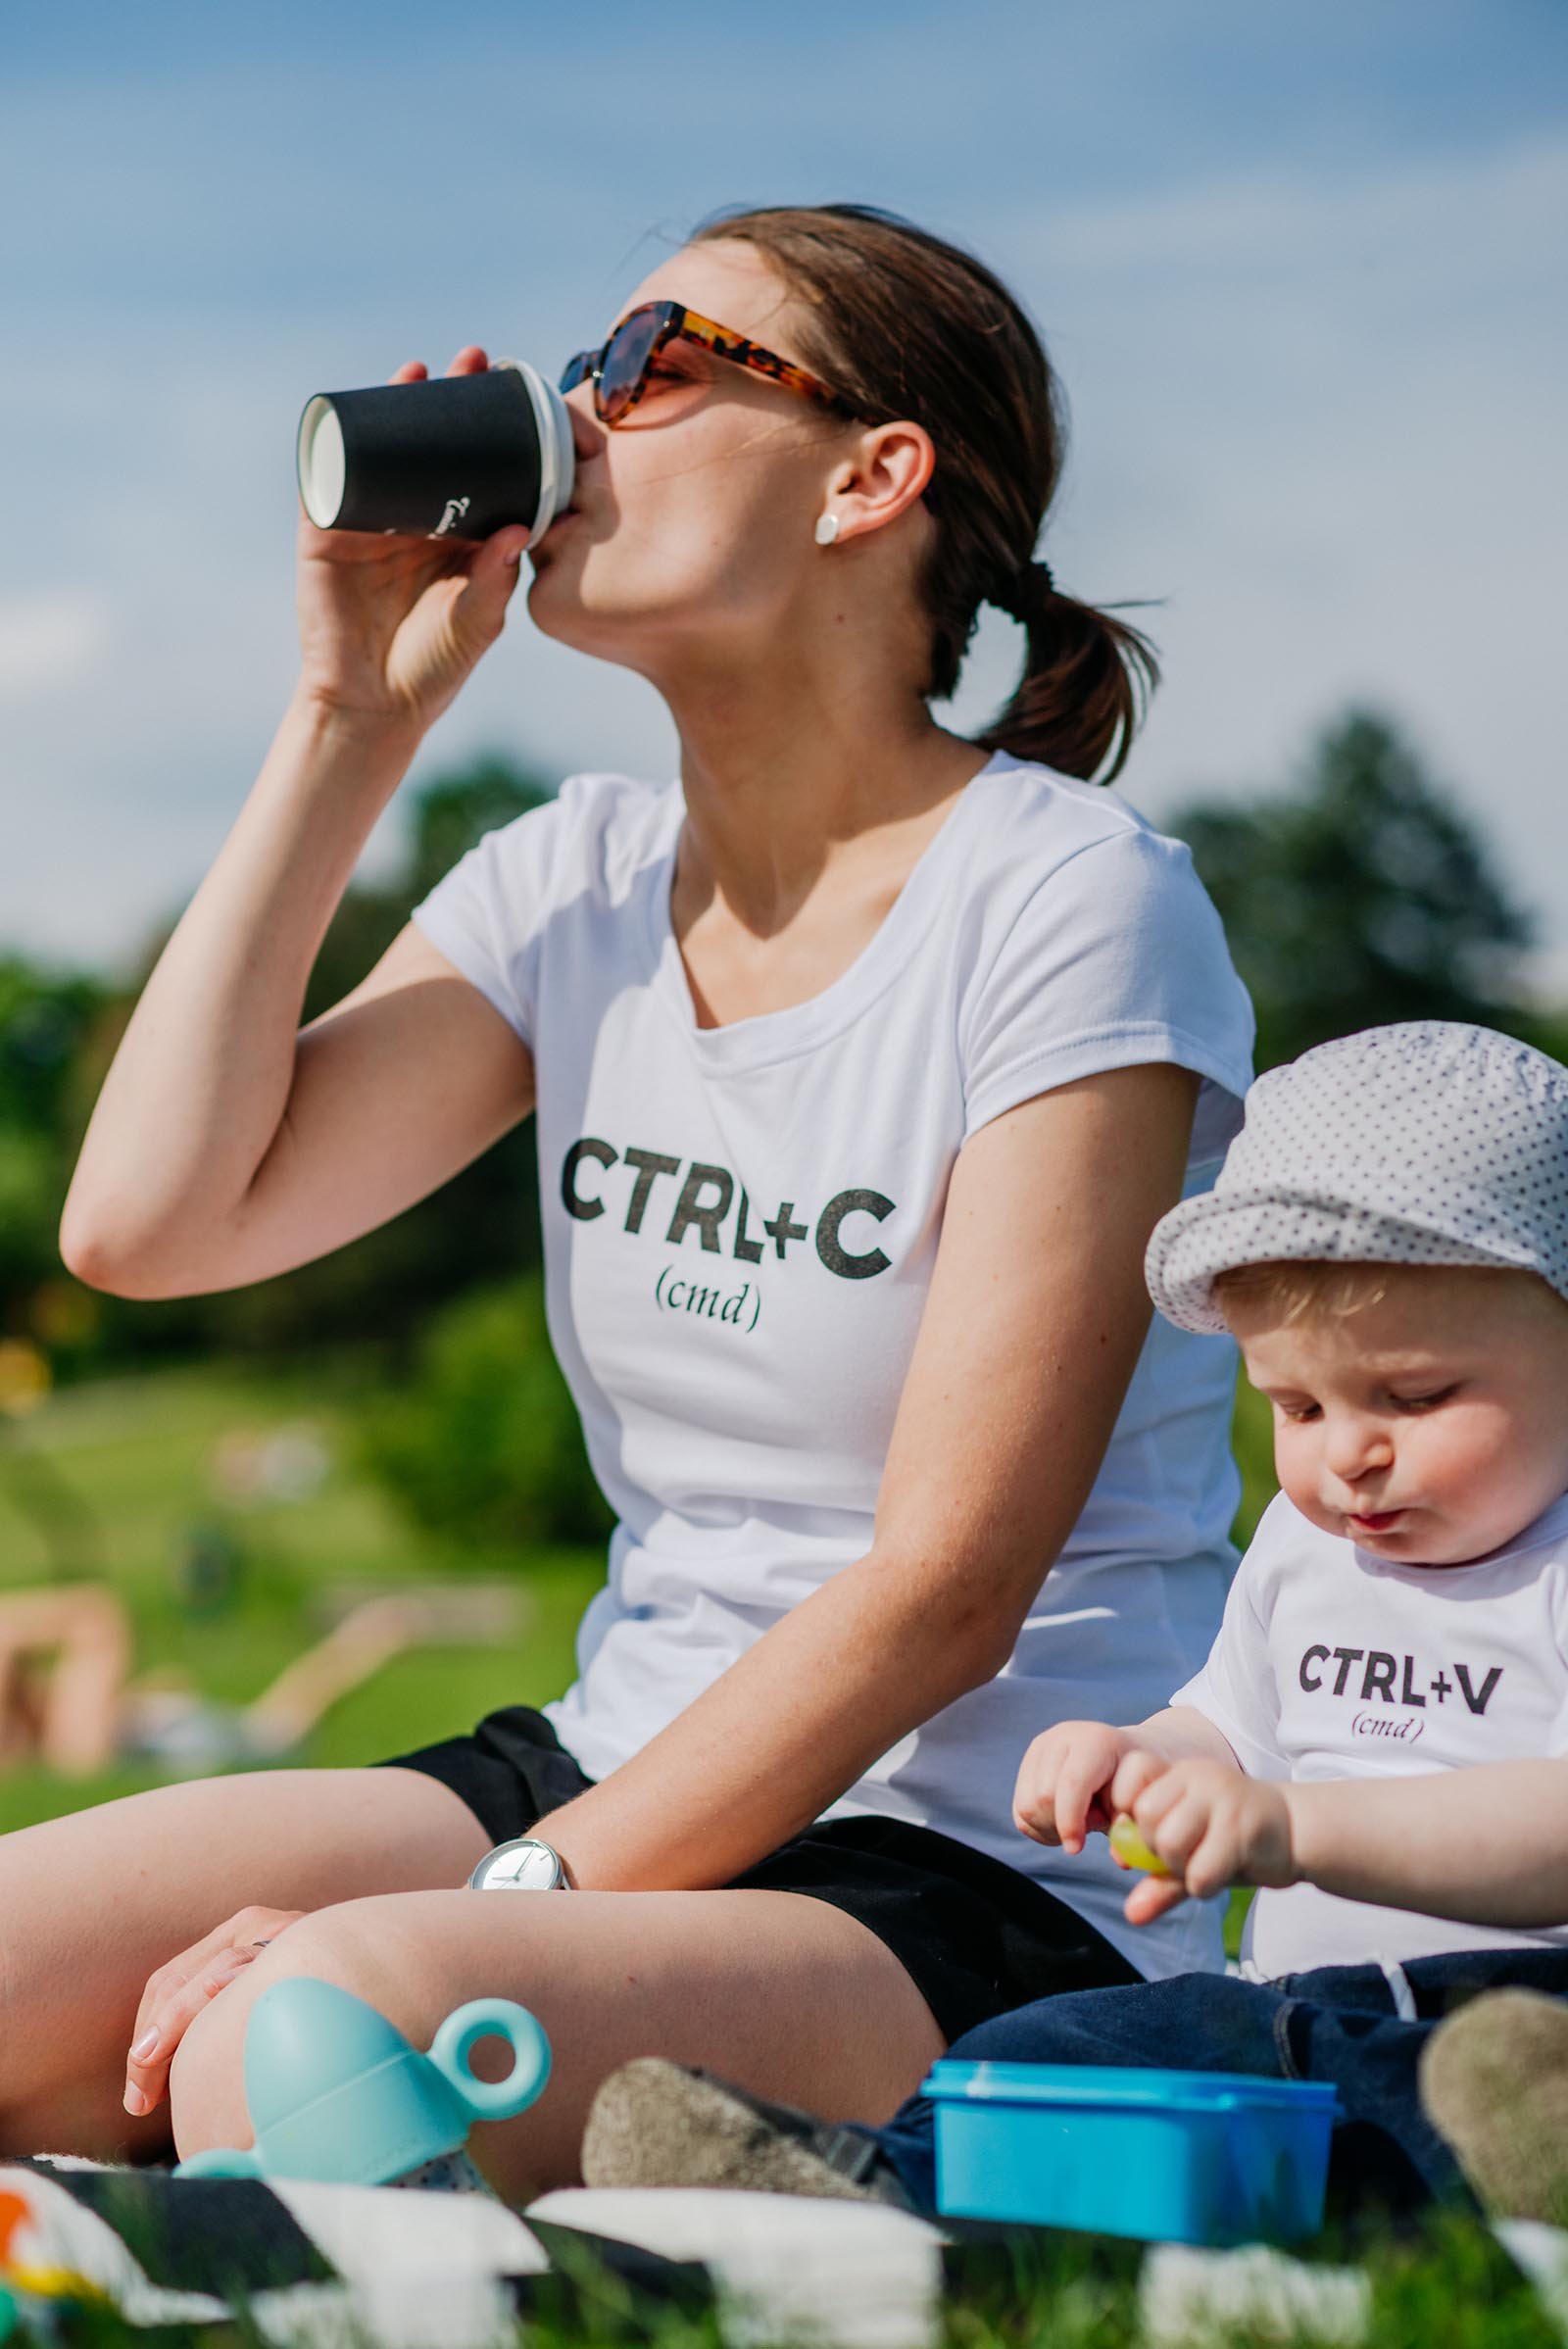 t-shirt and shirt for women ctrl+cw white